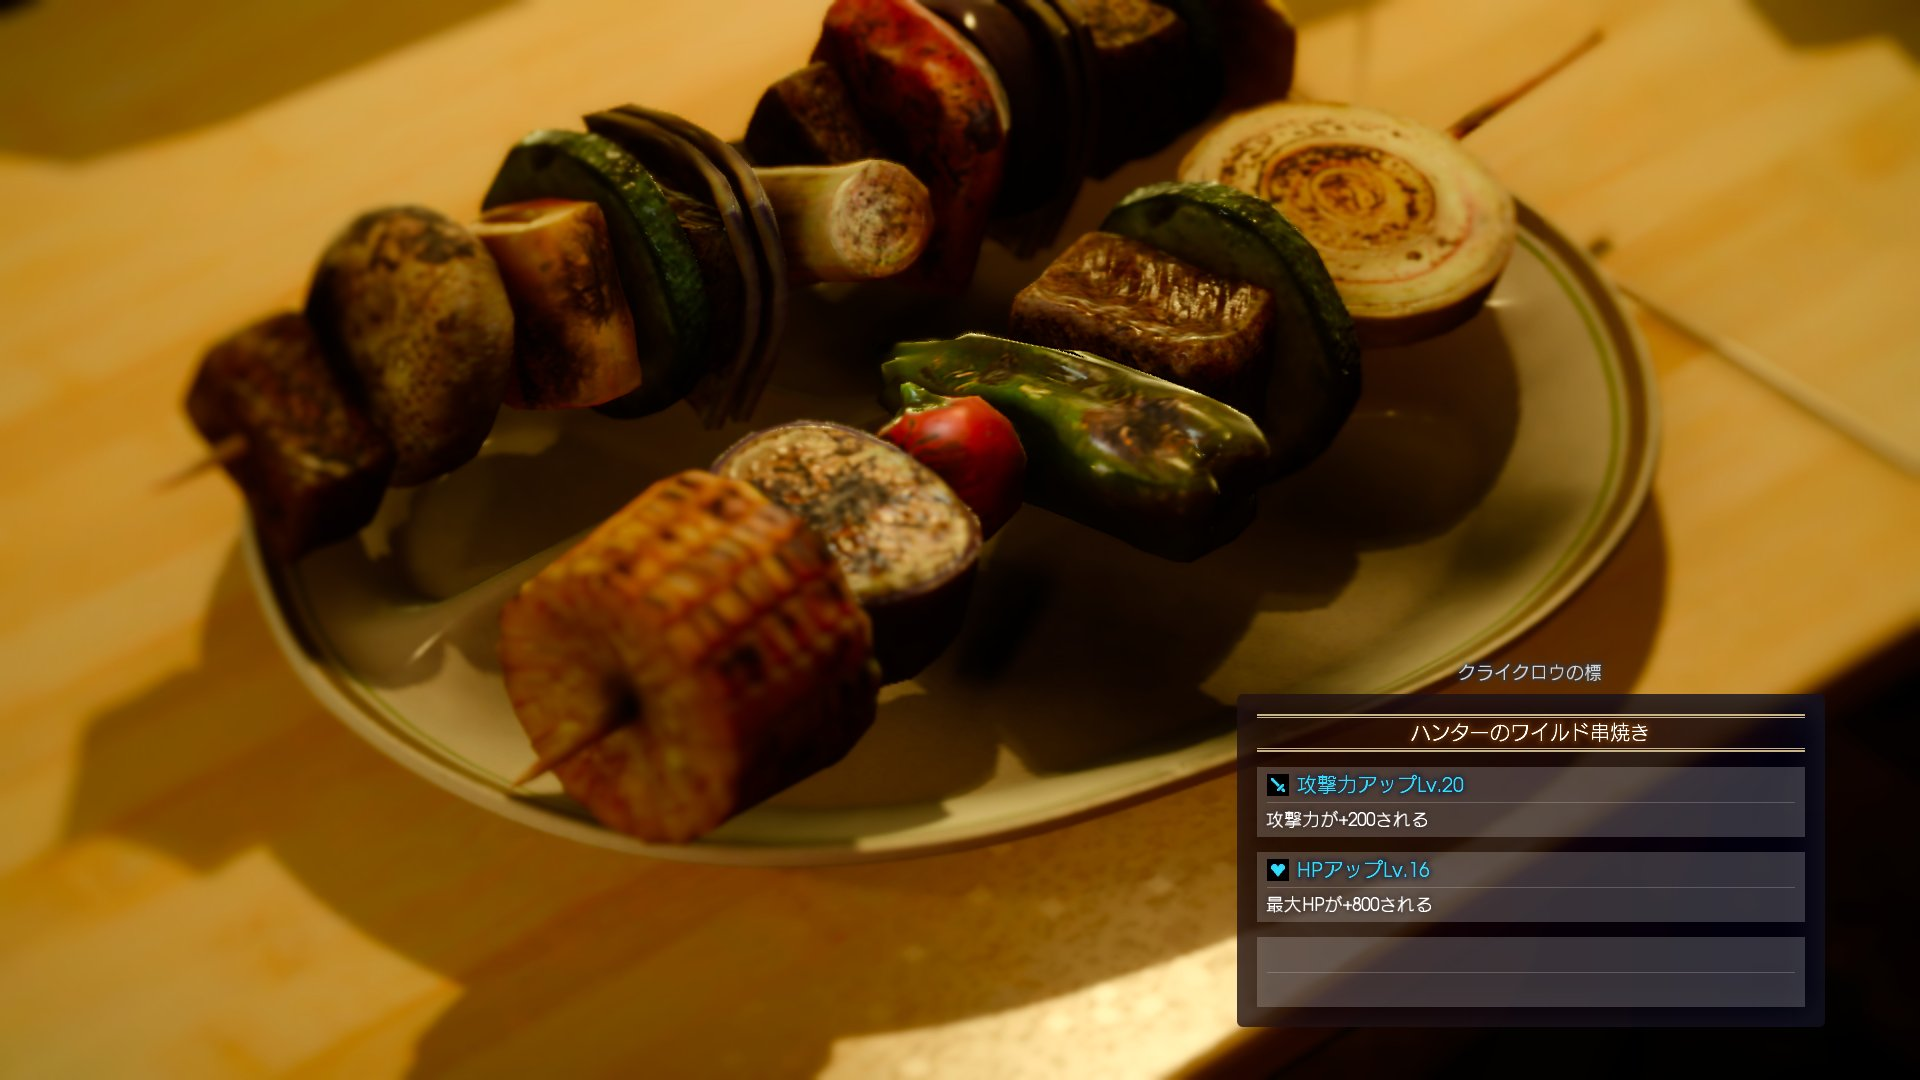 Final Fantasy Meals